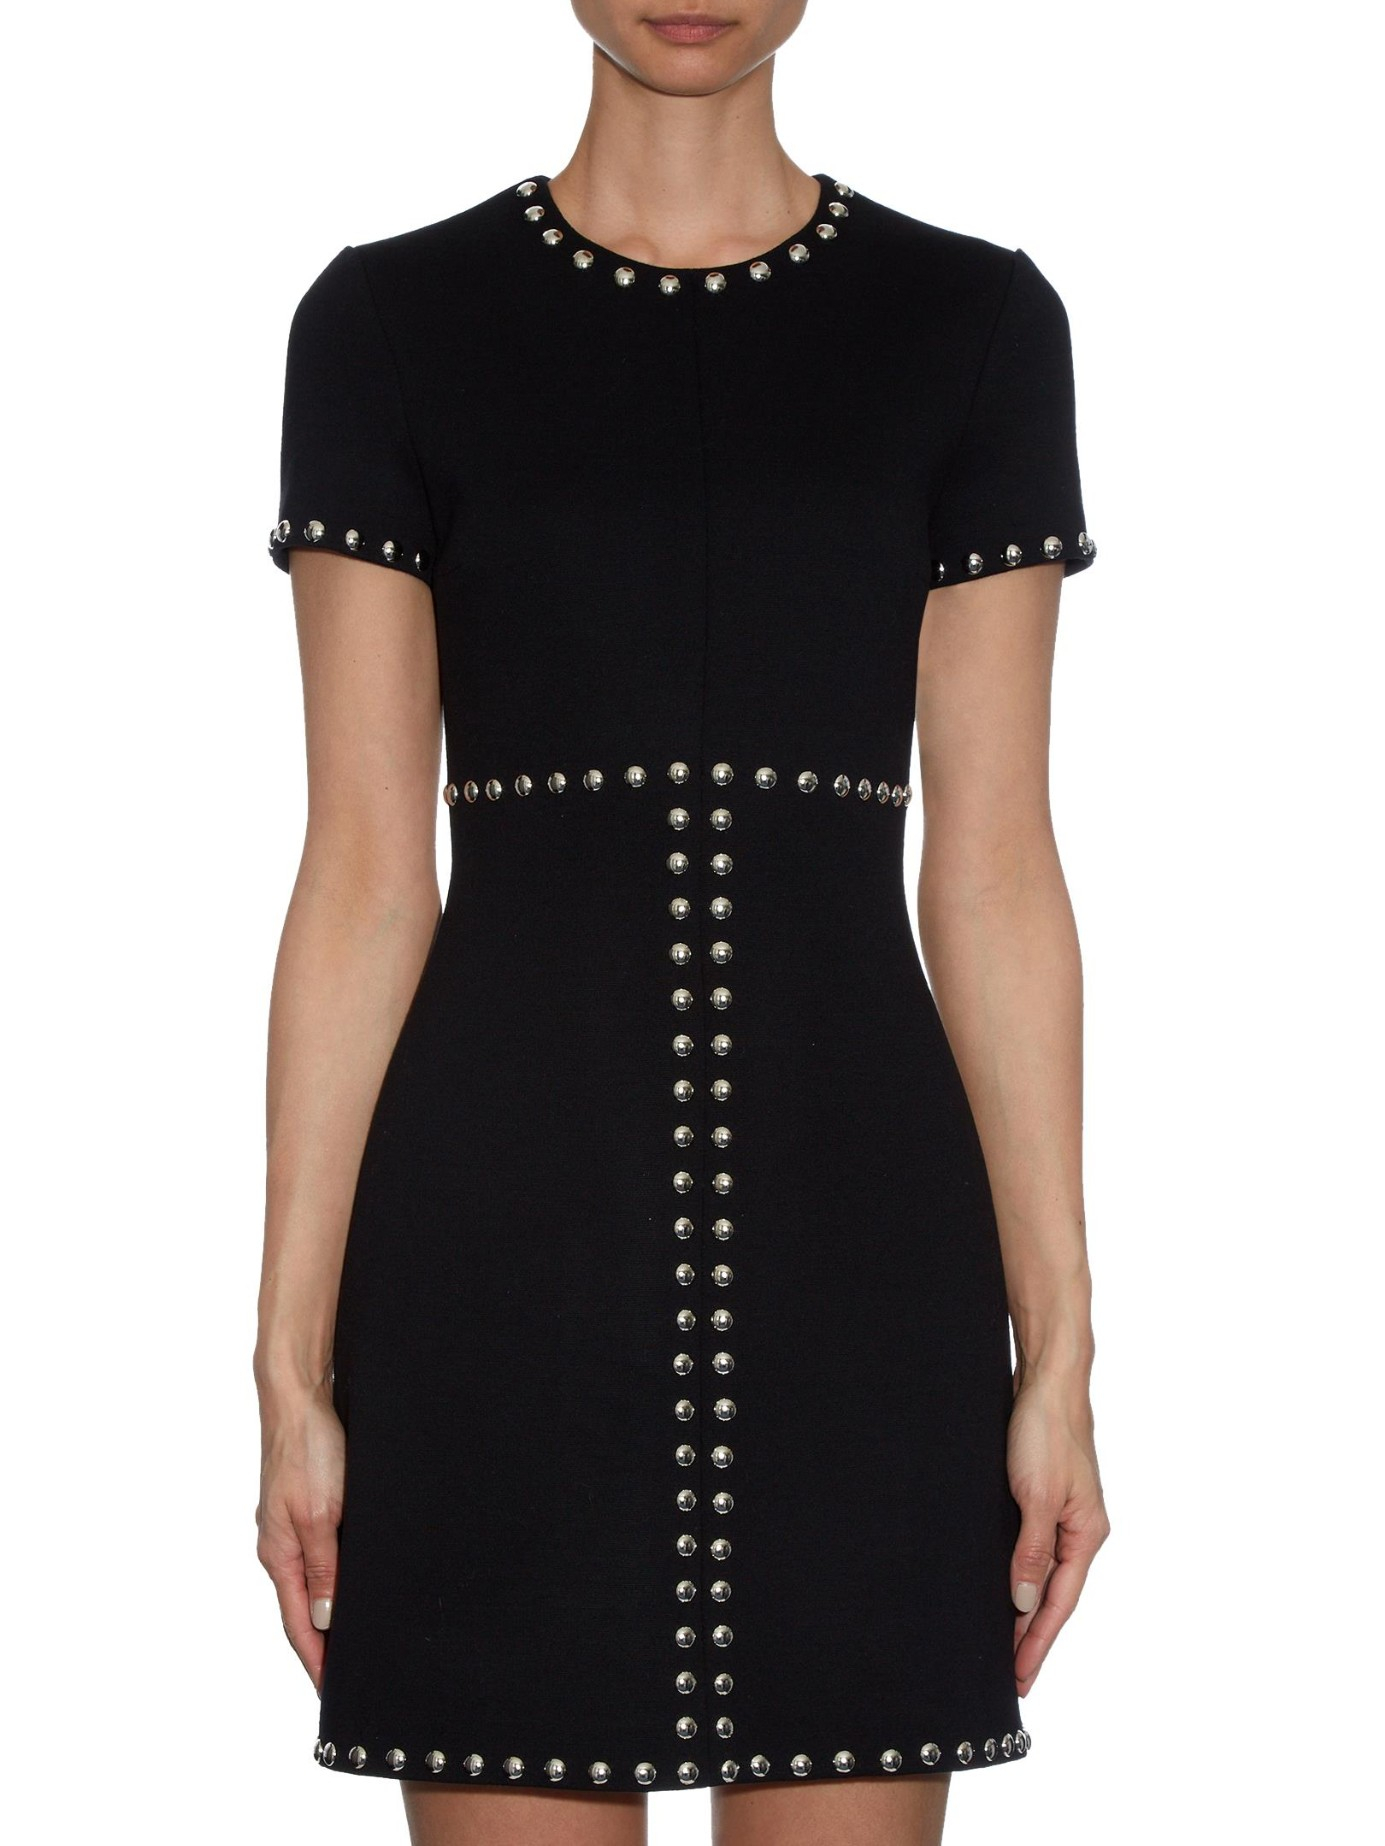 Saint Laurent Stud Embellished Wool Mini Dress In Black Lyst